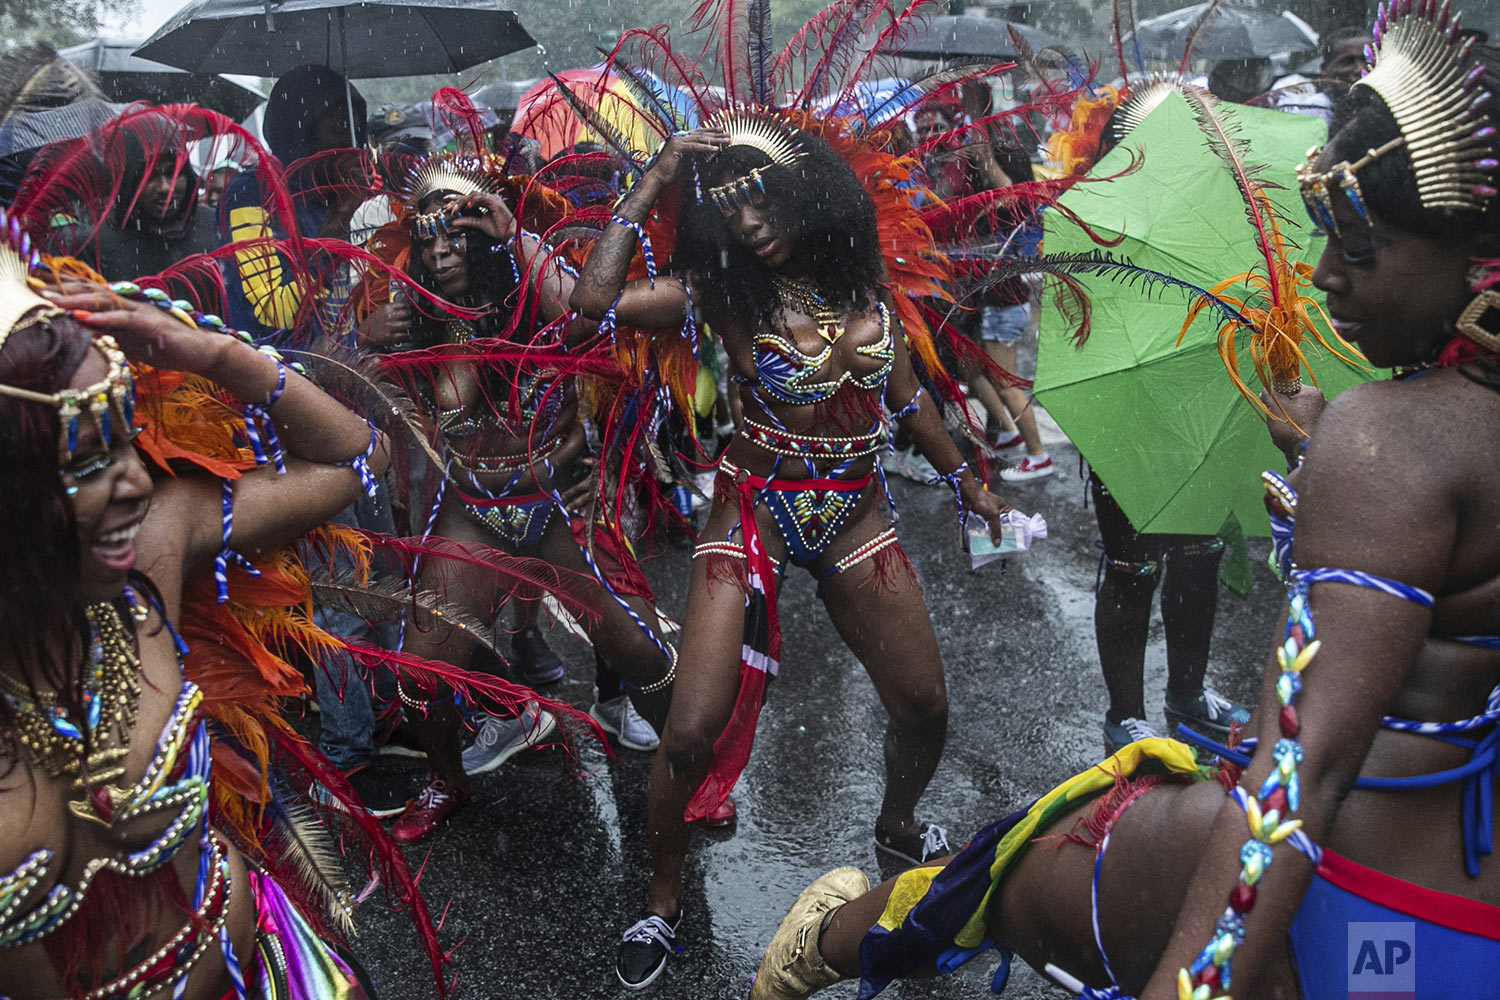 Revelers participate in the West Indian American Day Parade in the Brooklyn borough of New York, Monday, Sept. 2, 2019 (AP Photo/Jeenah Moon)